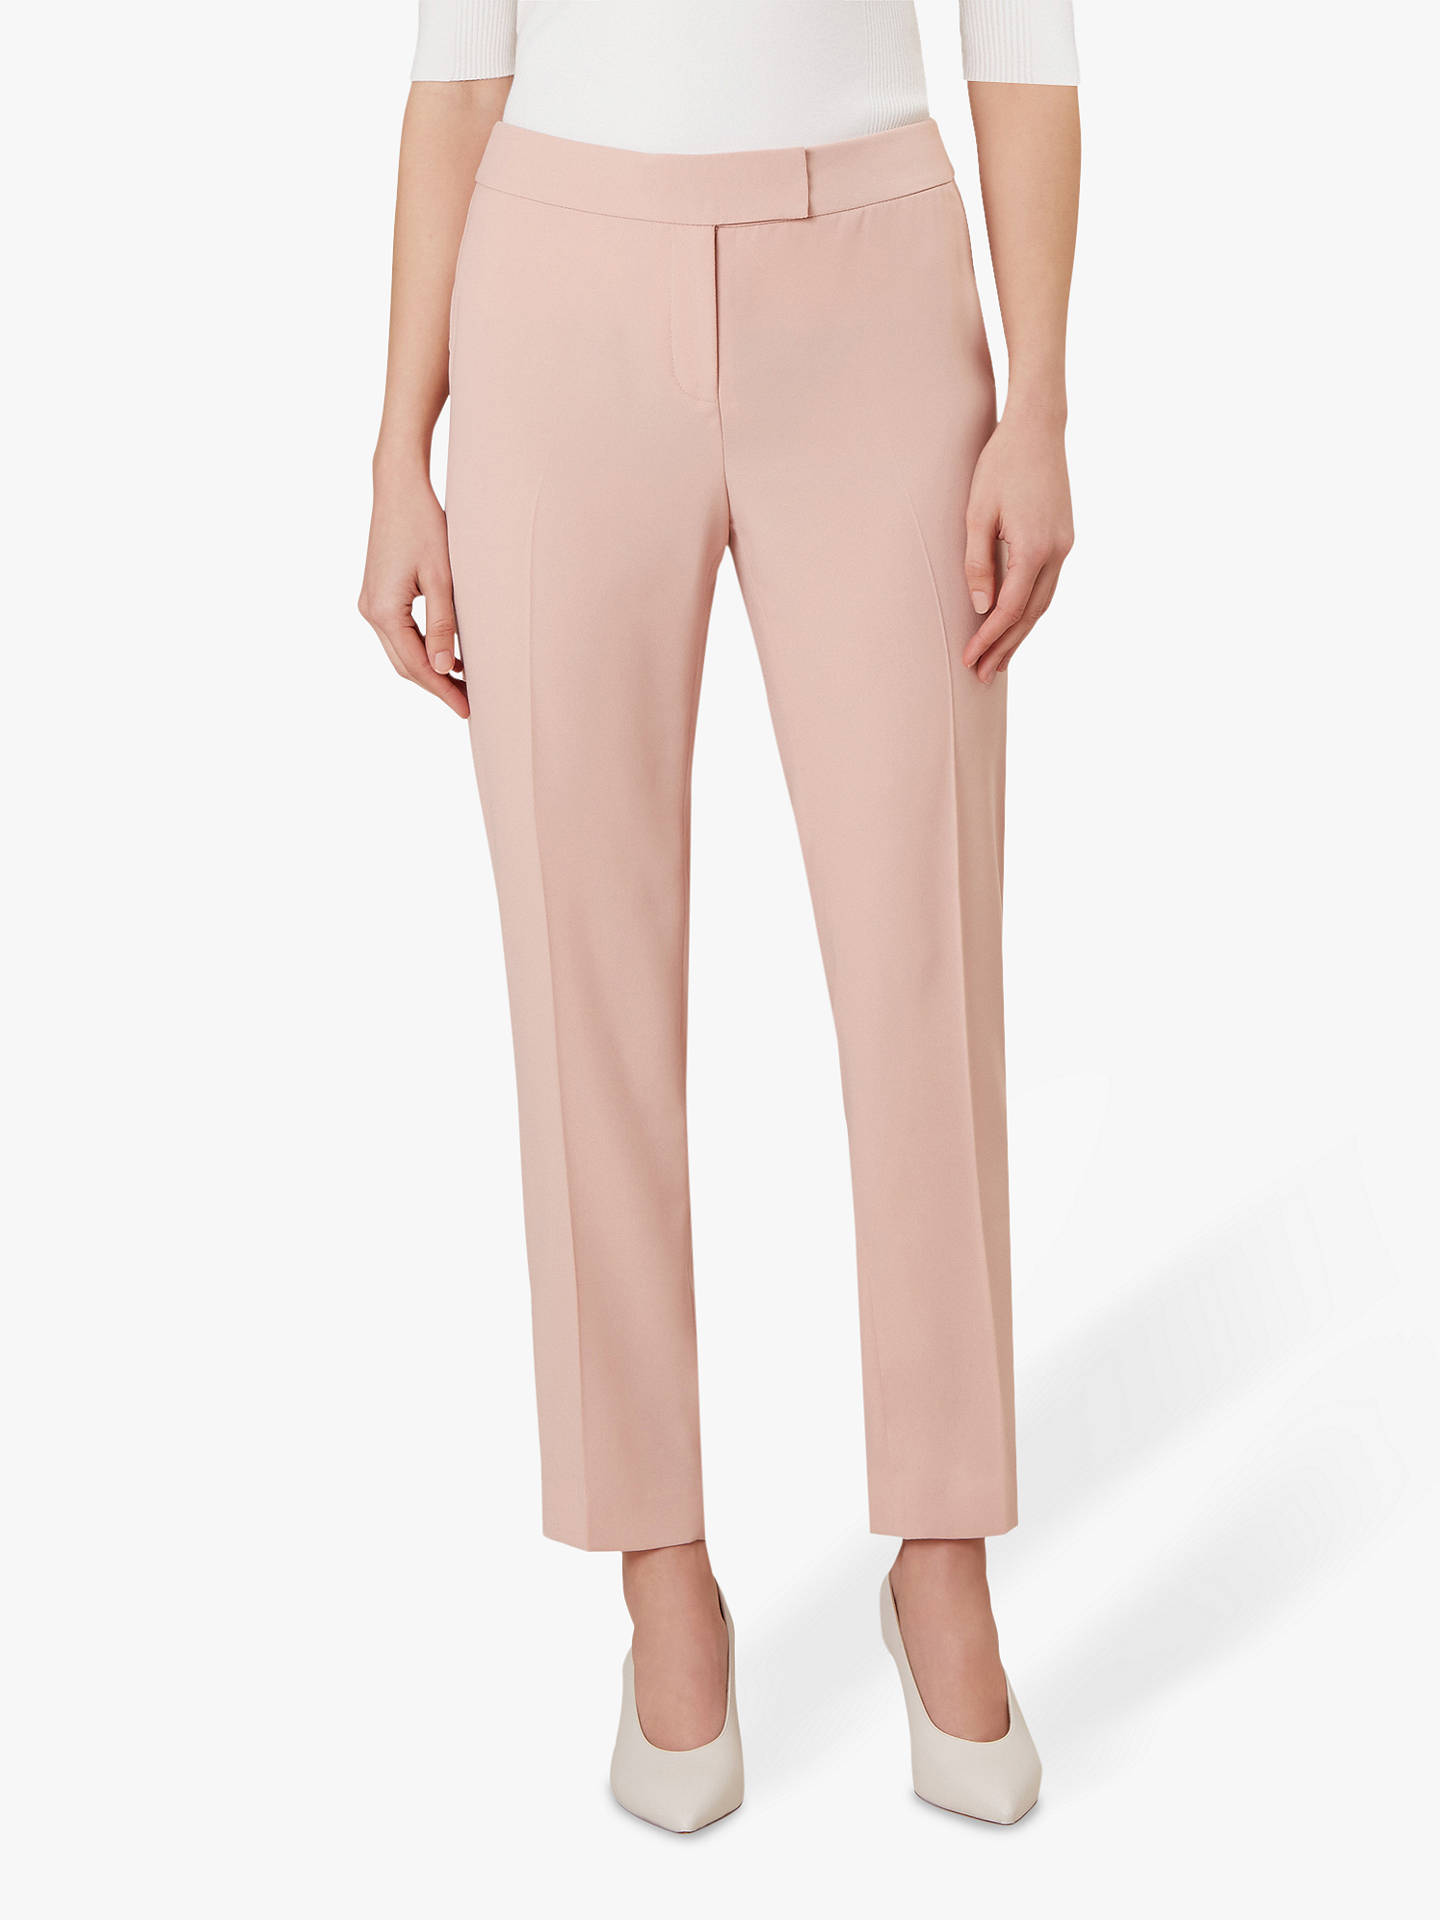 49ee58212114 Buy Hobbs Adelaide Trousers, Ballet Pink, 6 Online at johnlewis.com ...